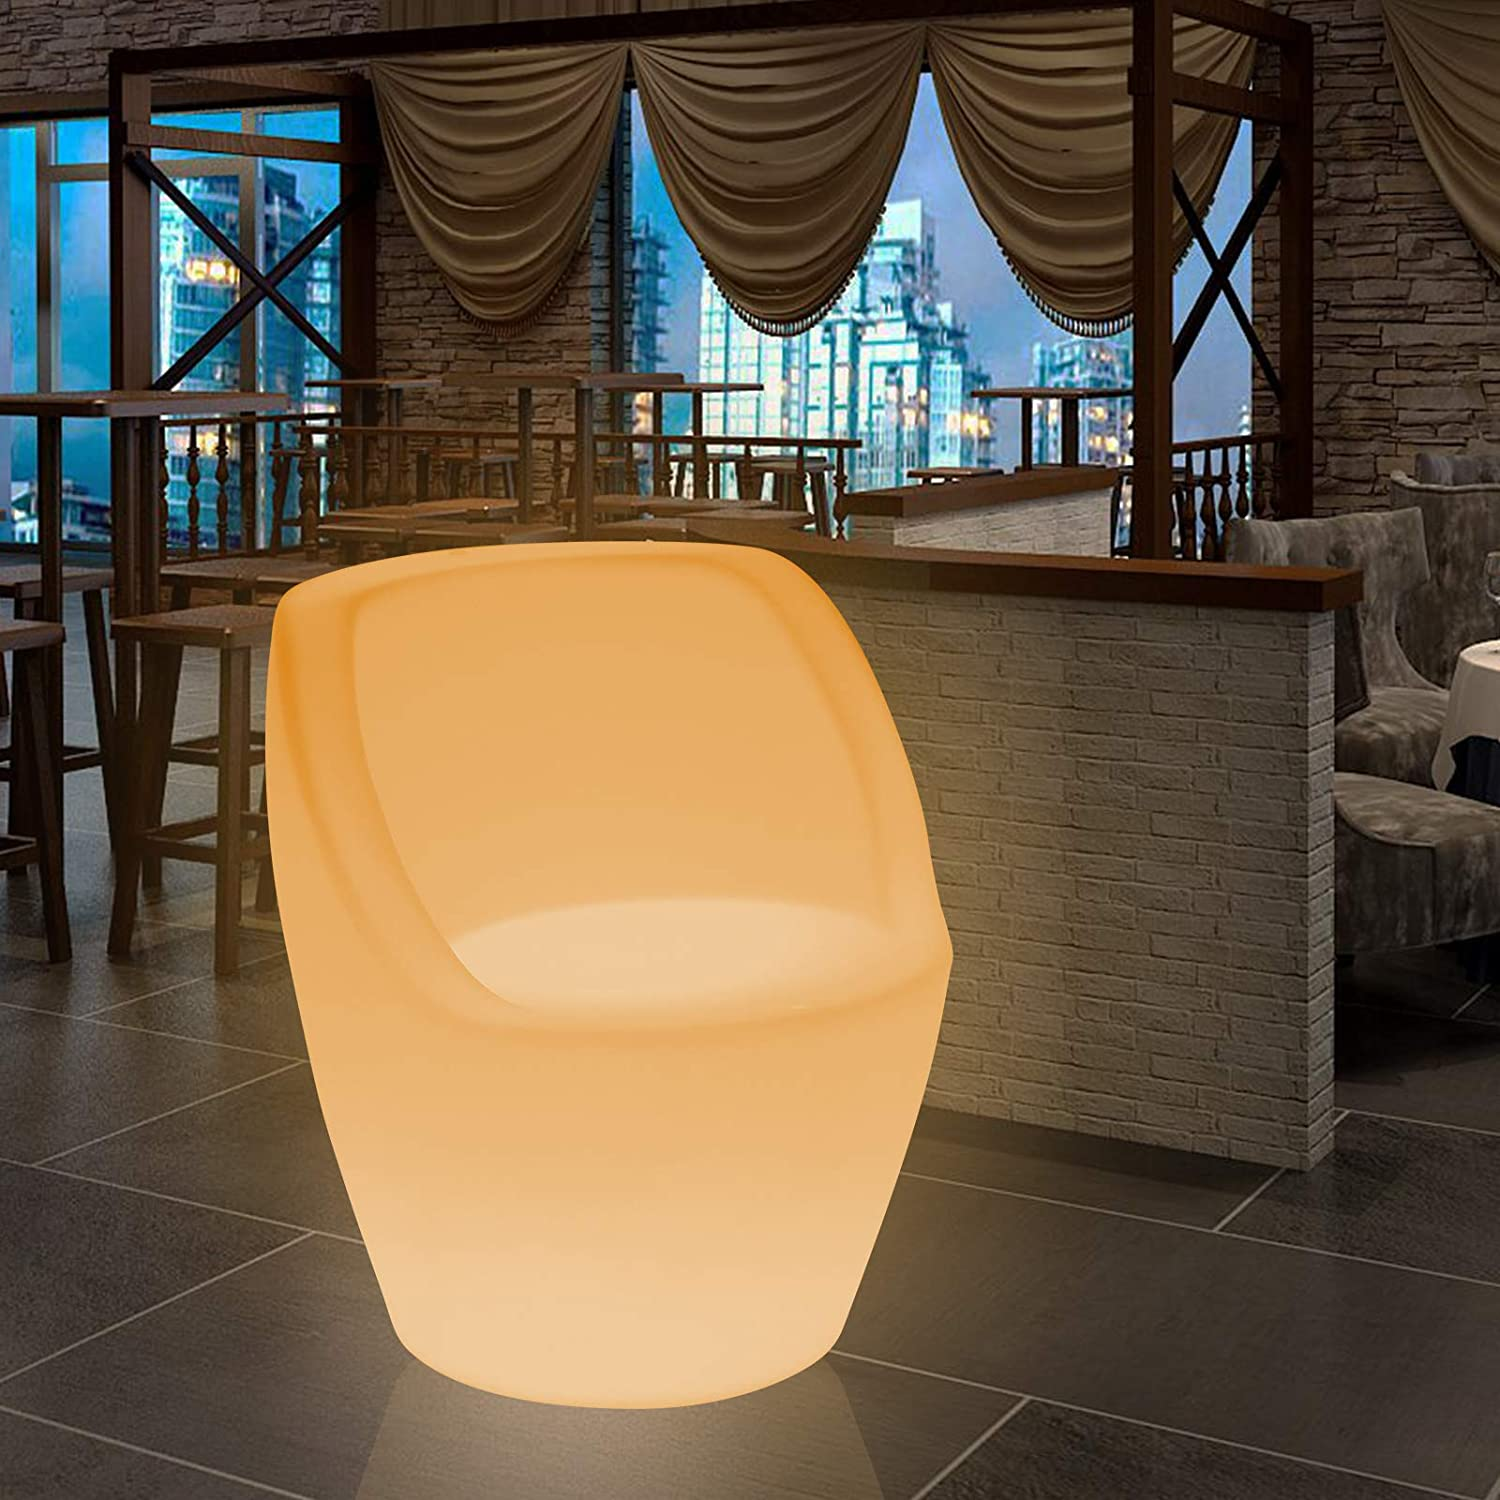 Sandy Brown 16 Color LED Light Up Chair Furniture Pub Club Lounge Party Seat